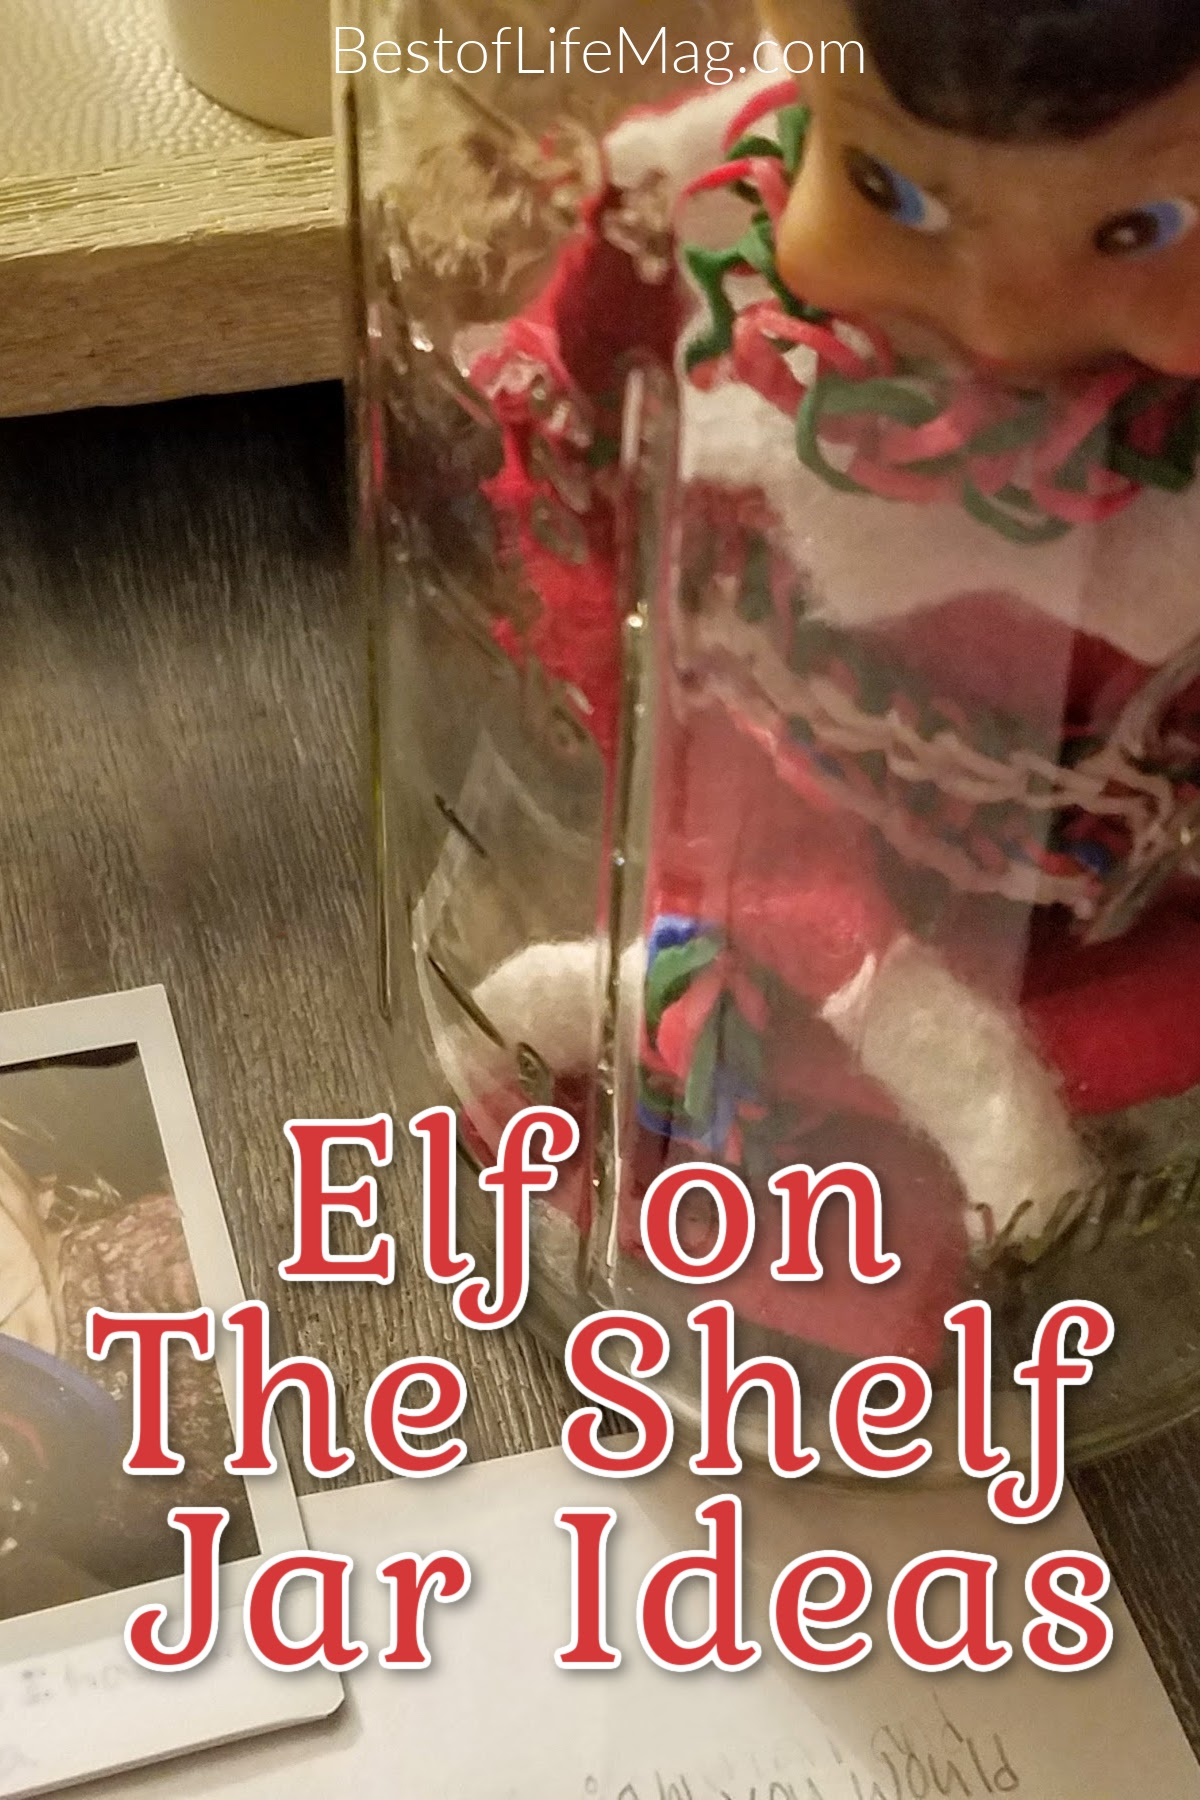 Elf On The Shelf Jar Ideas Carry Your Elf With You The Best Of Life Magazine